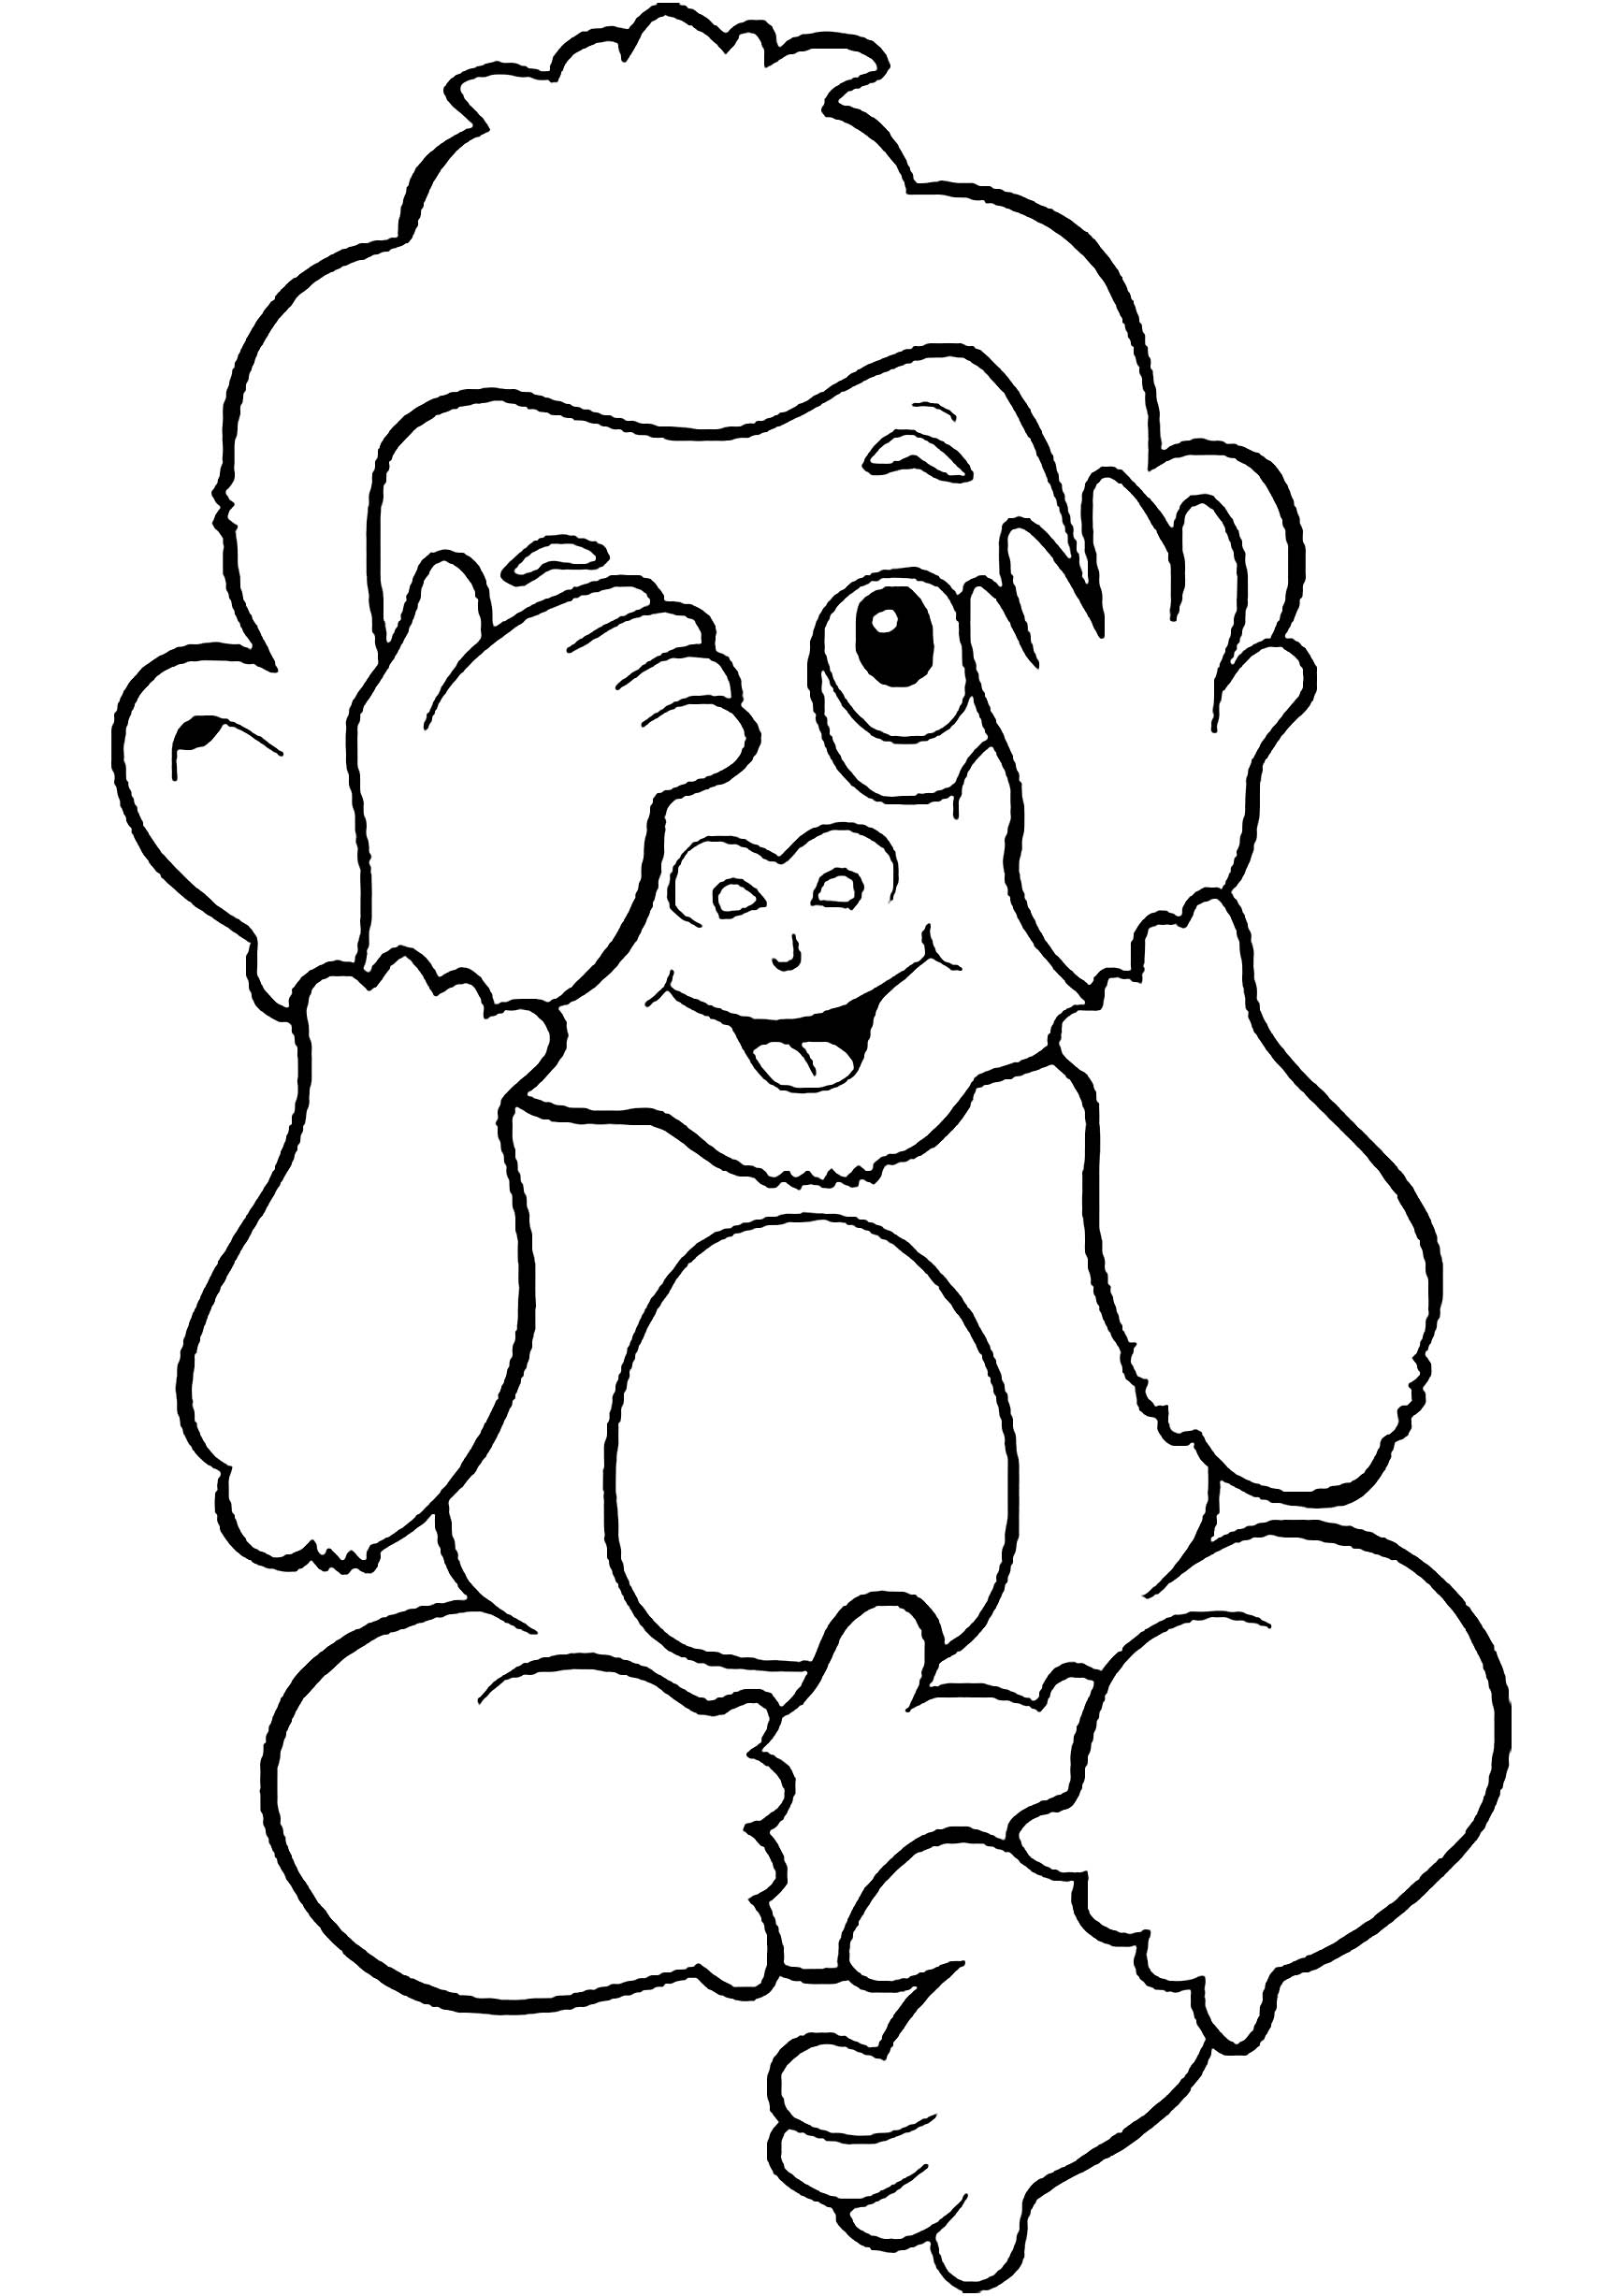 monkey pictures to color monkey worksheets and coloring pages color monkey pictures to